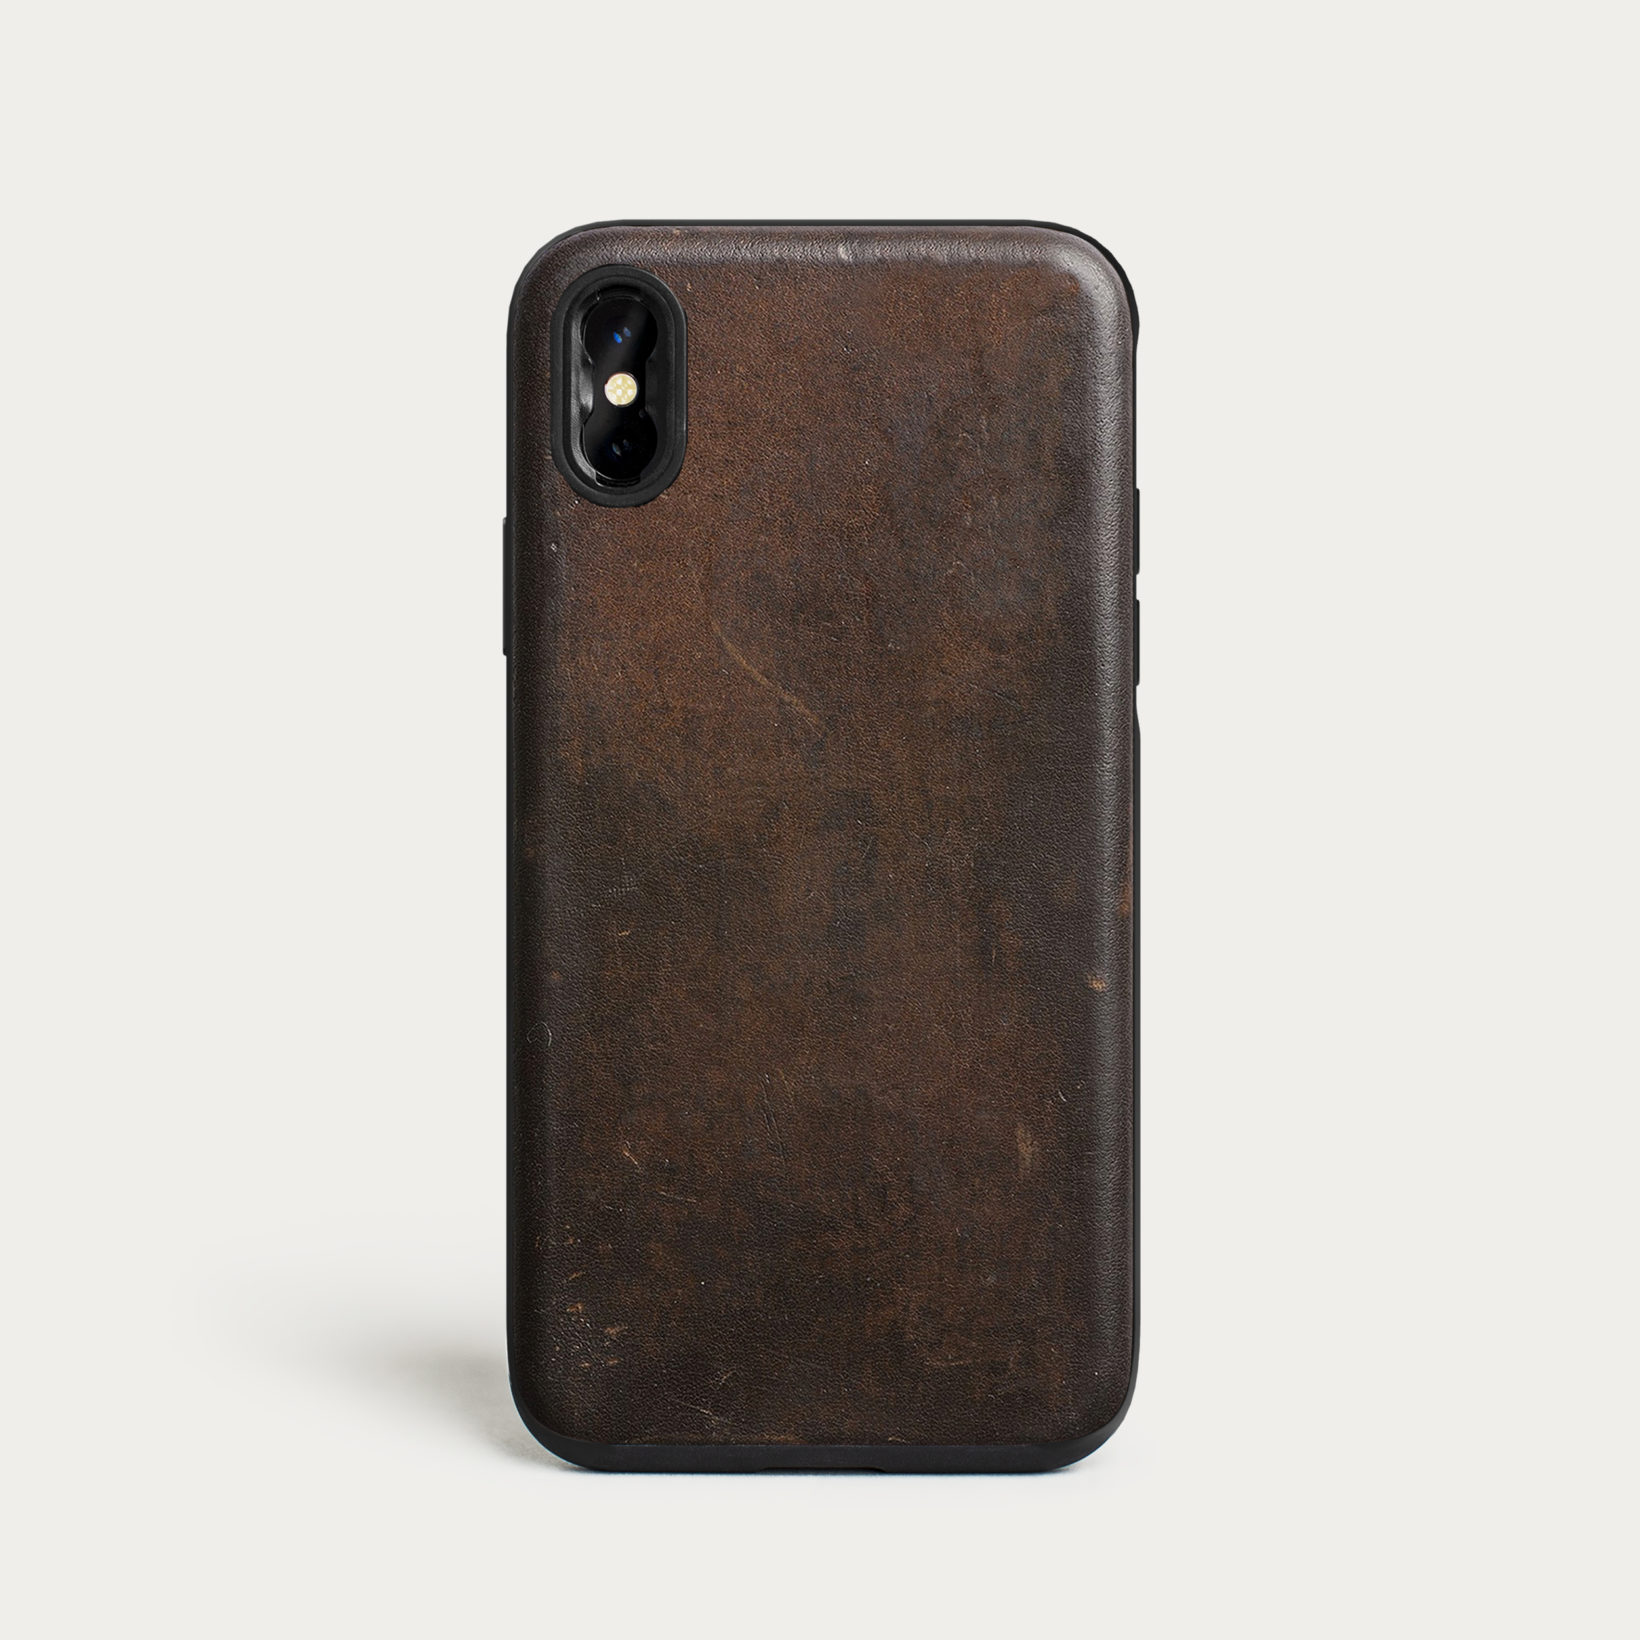 reputable site 1a379 f60ea Nomad x Moment Rugged iPhone Case   iPhone XS Max - Nomad / Moment Rugged  Case Rustic Brown Leather